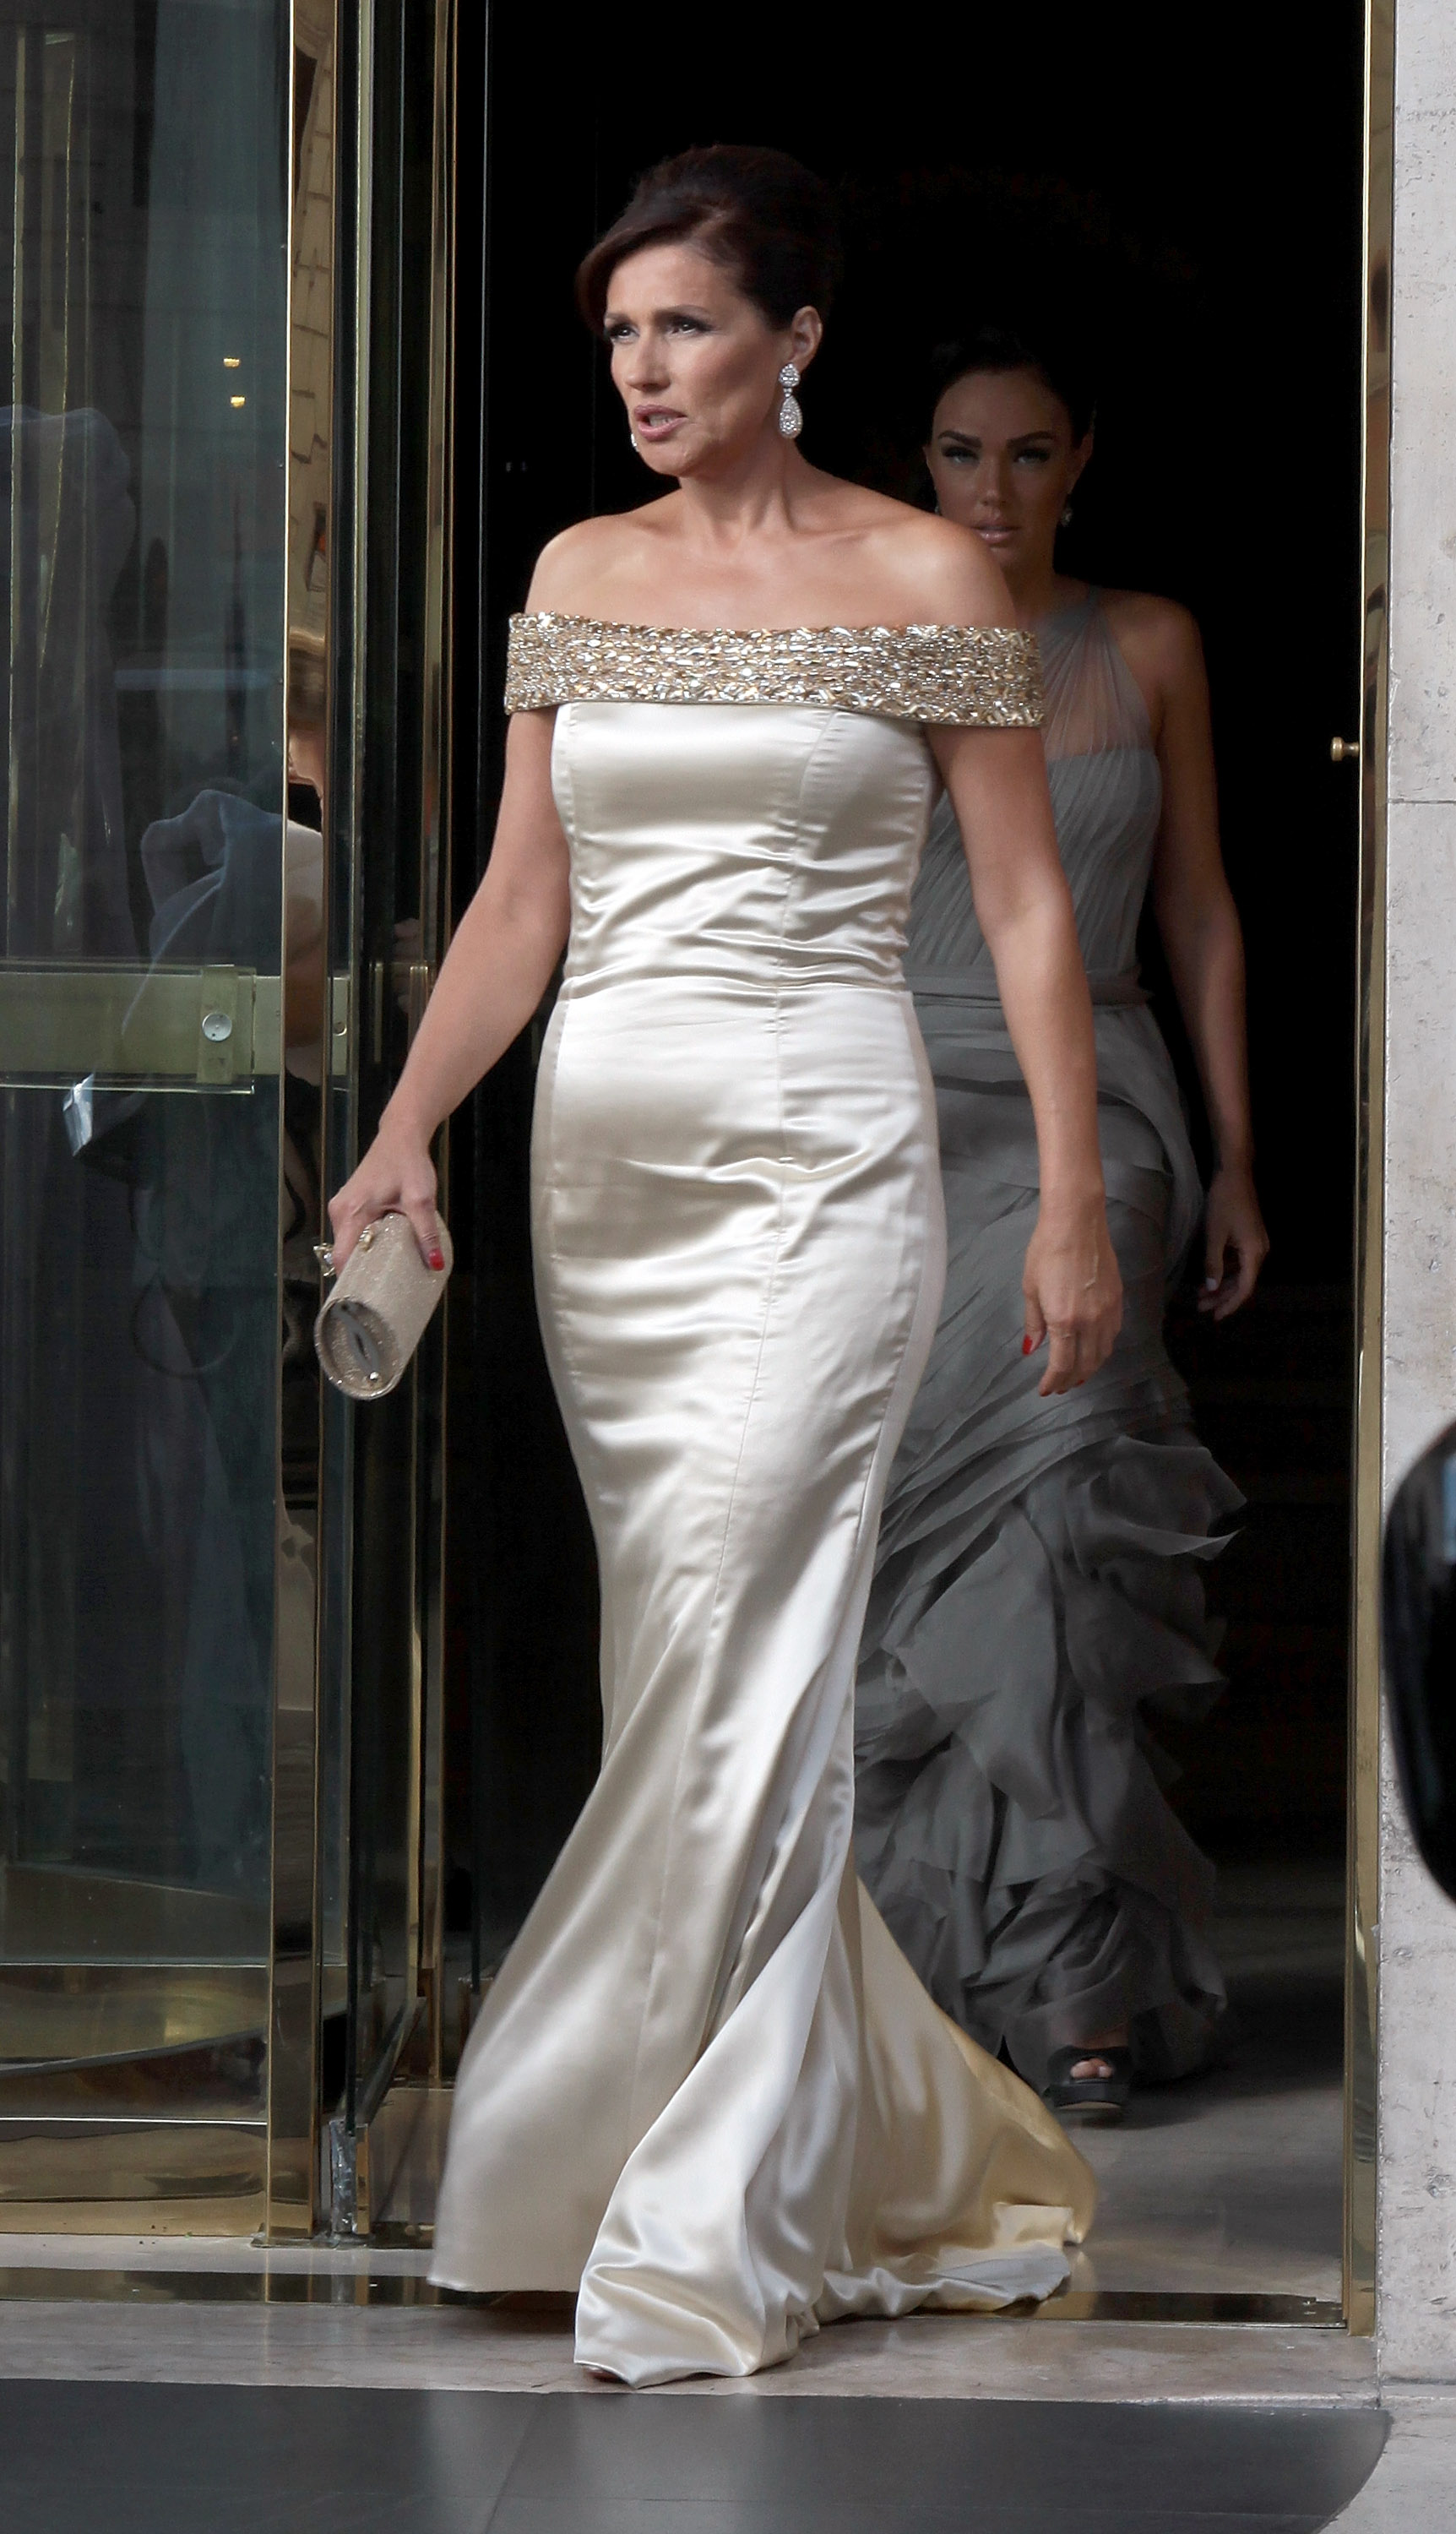 The Brides Mother Slavica Chose A Champagne Dress For The Special